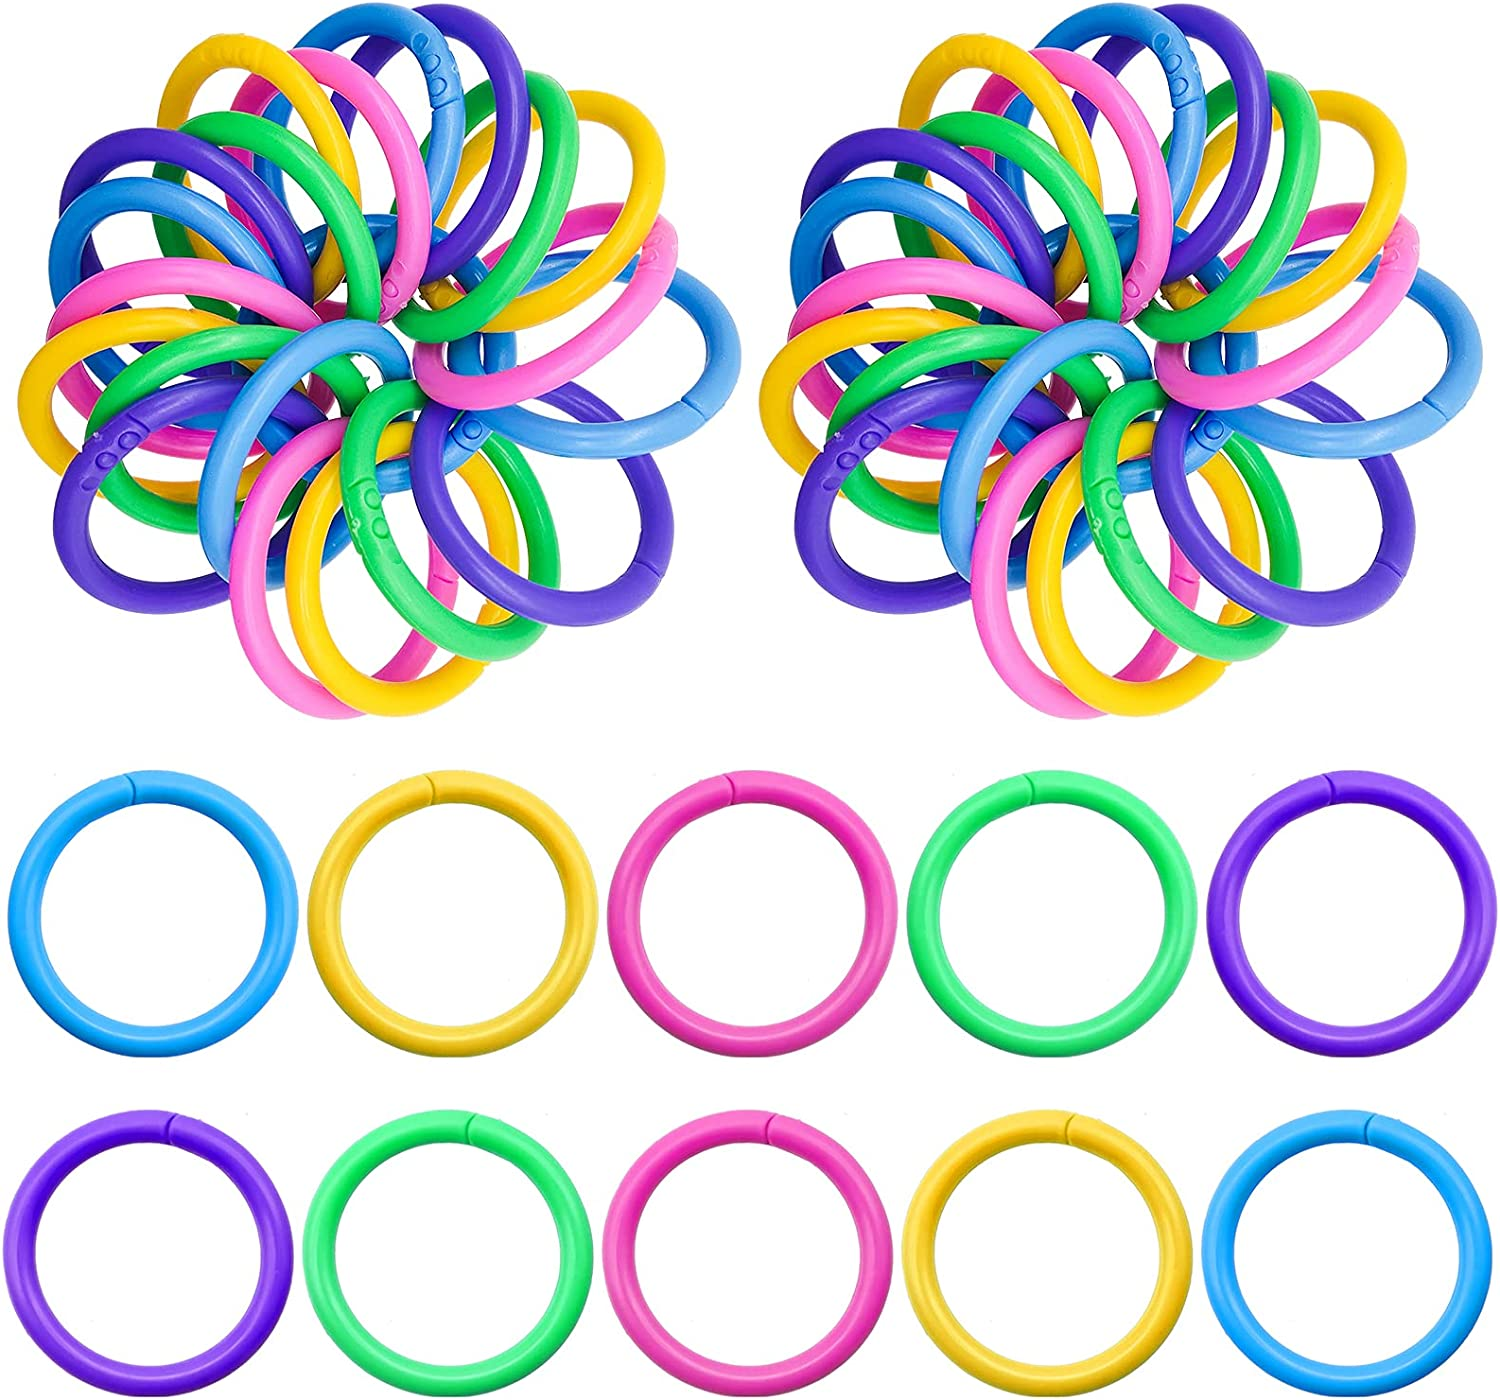 100pcs Plastic Loose-Leaf favorite Rings Binder New product type Ring 1.1inch Multi-Color